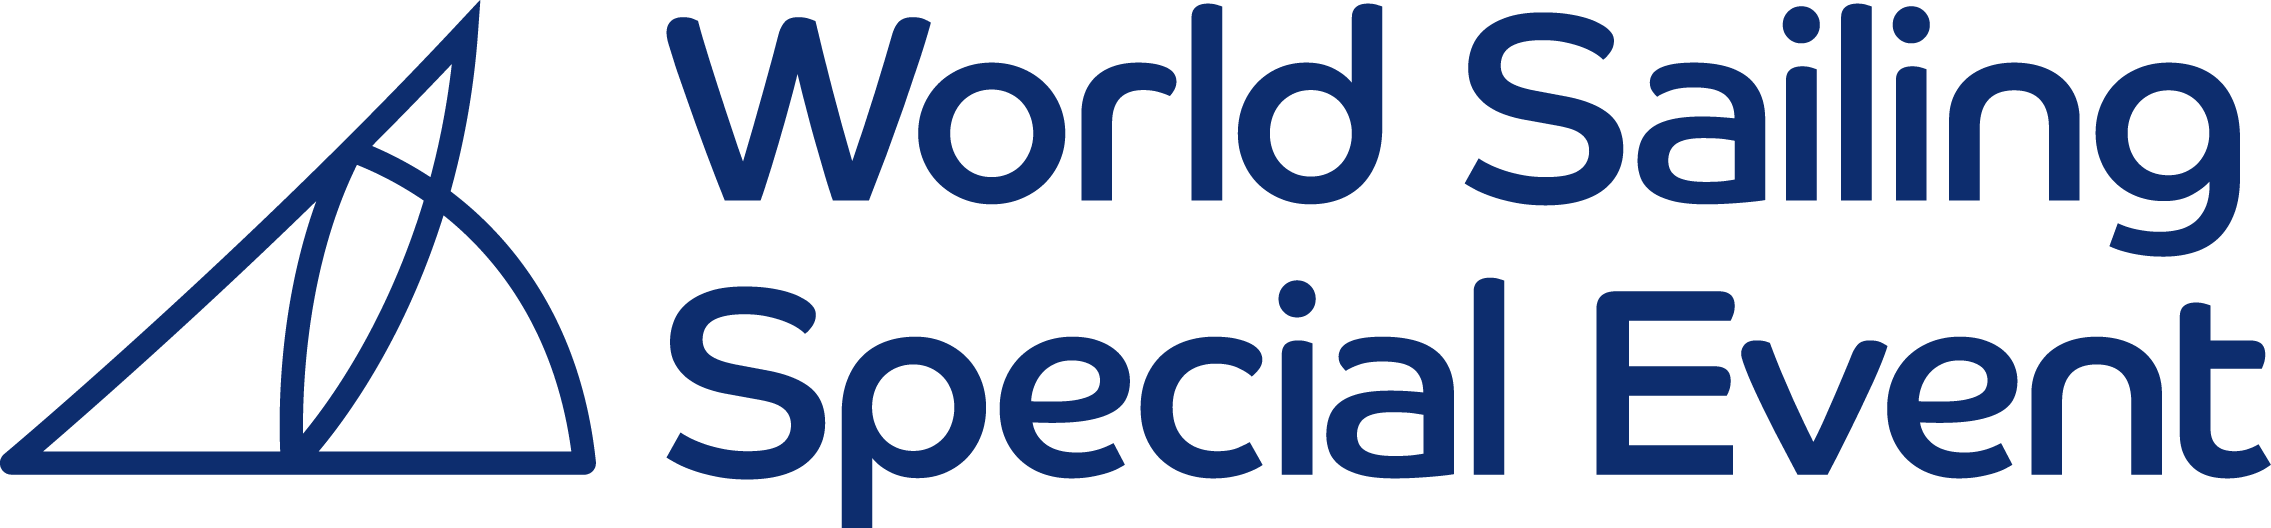 World Sailing Special Event